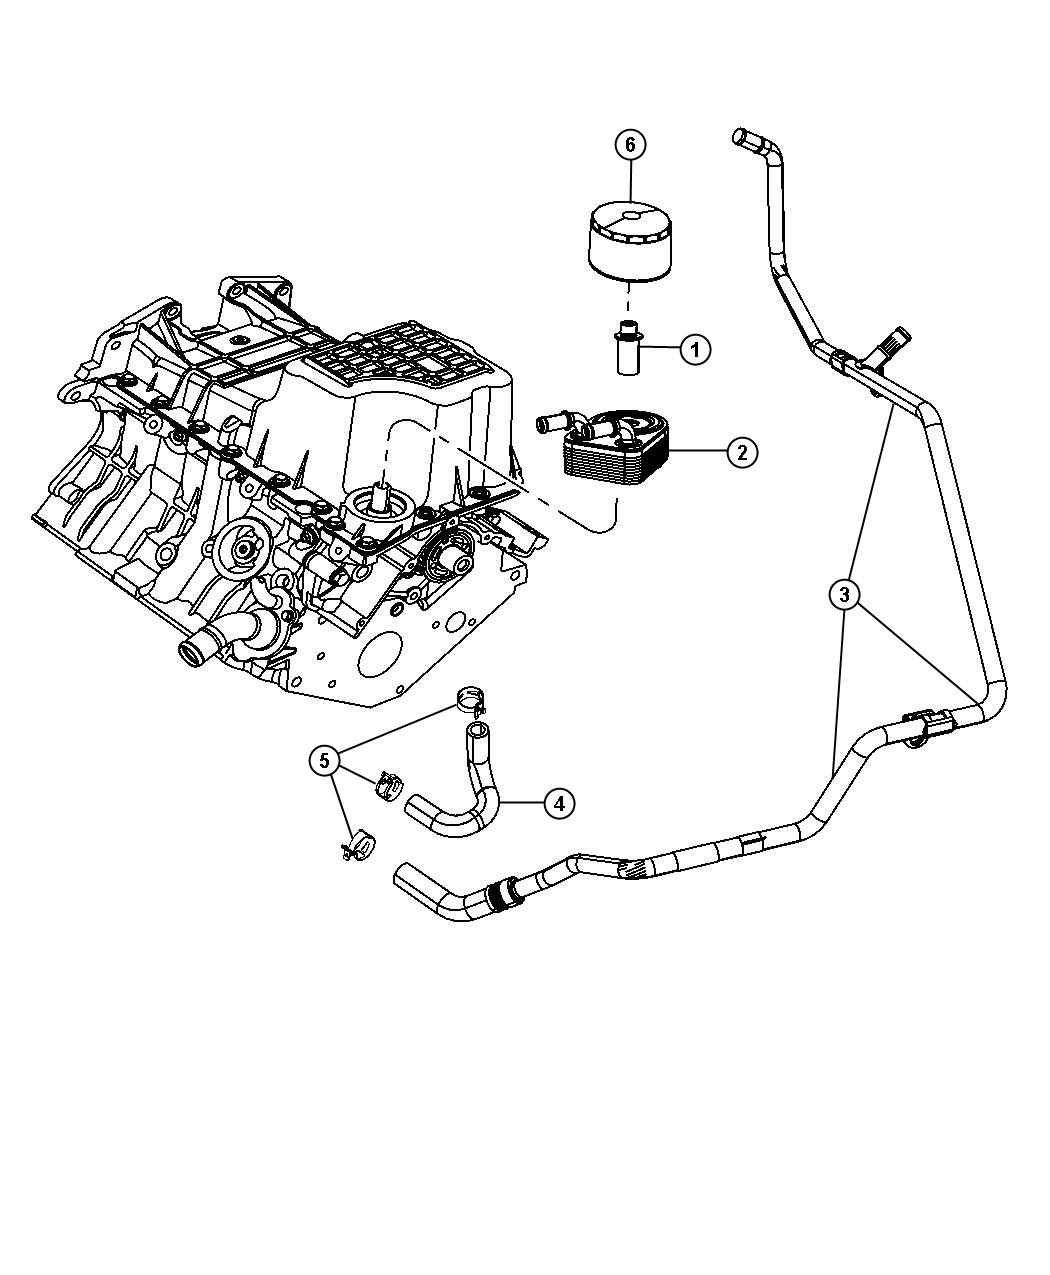 P 0900c152800c2d35 as well Where Is Fuel Pressure Regulator On 1997 1500 Chevy Truck 350 Vortec Engine    899758 moreover Camshaft Sensor Location 2004 Durango as well Dodge Intrepid Engine Diagram Oil Cooler besides 564956 Ford F150 Oxygen Sensor Location. on 99 5 7l knock sensor location